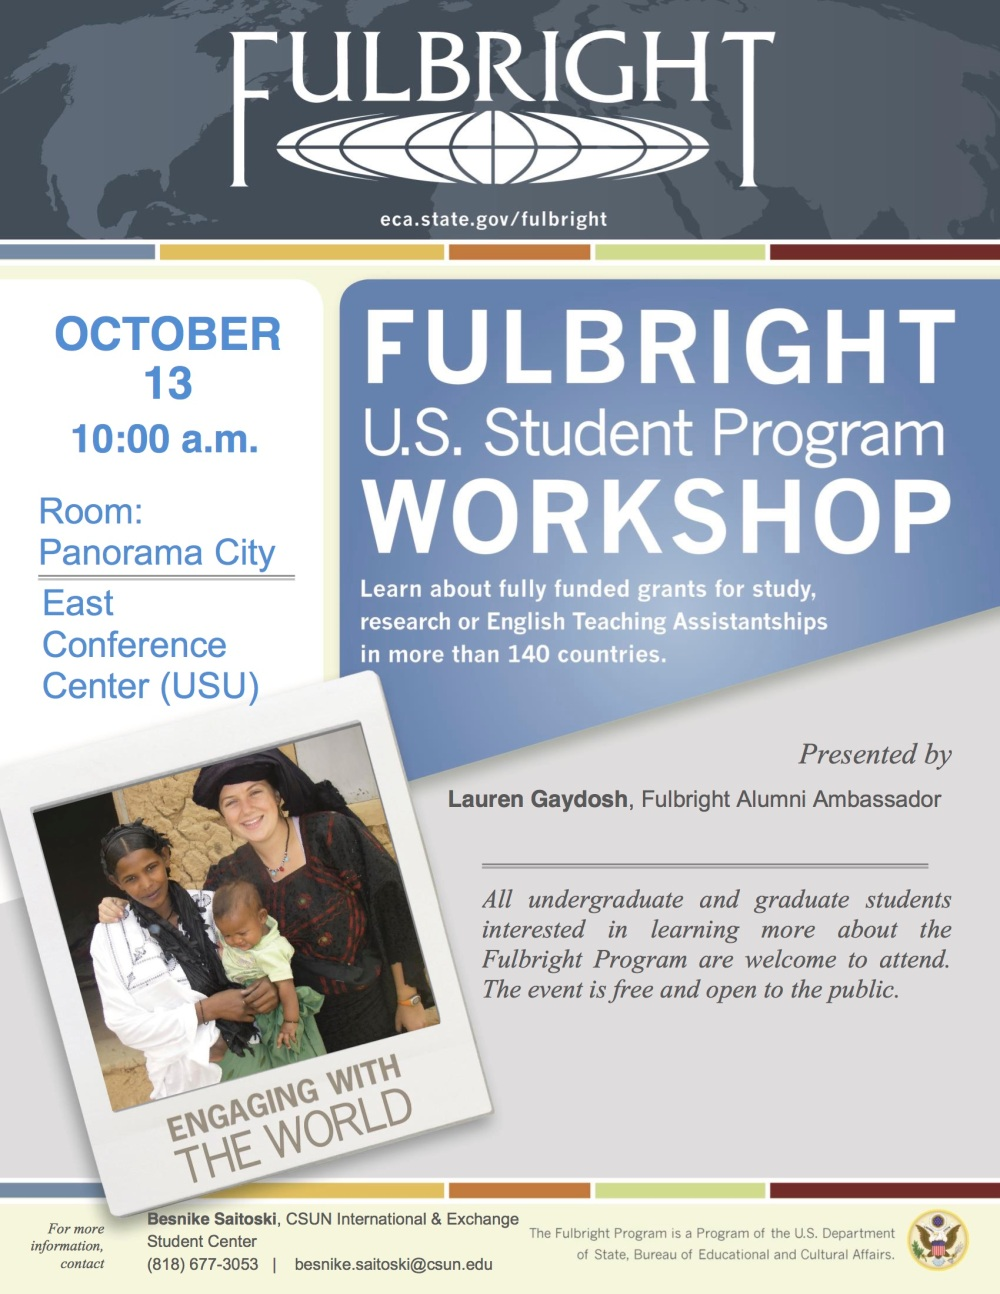 fulbright-u-s-student-program-flyer1